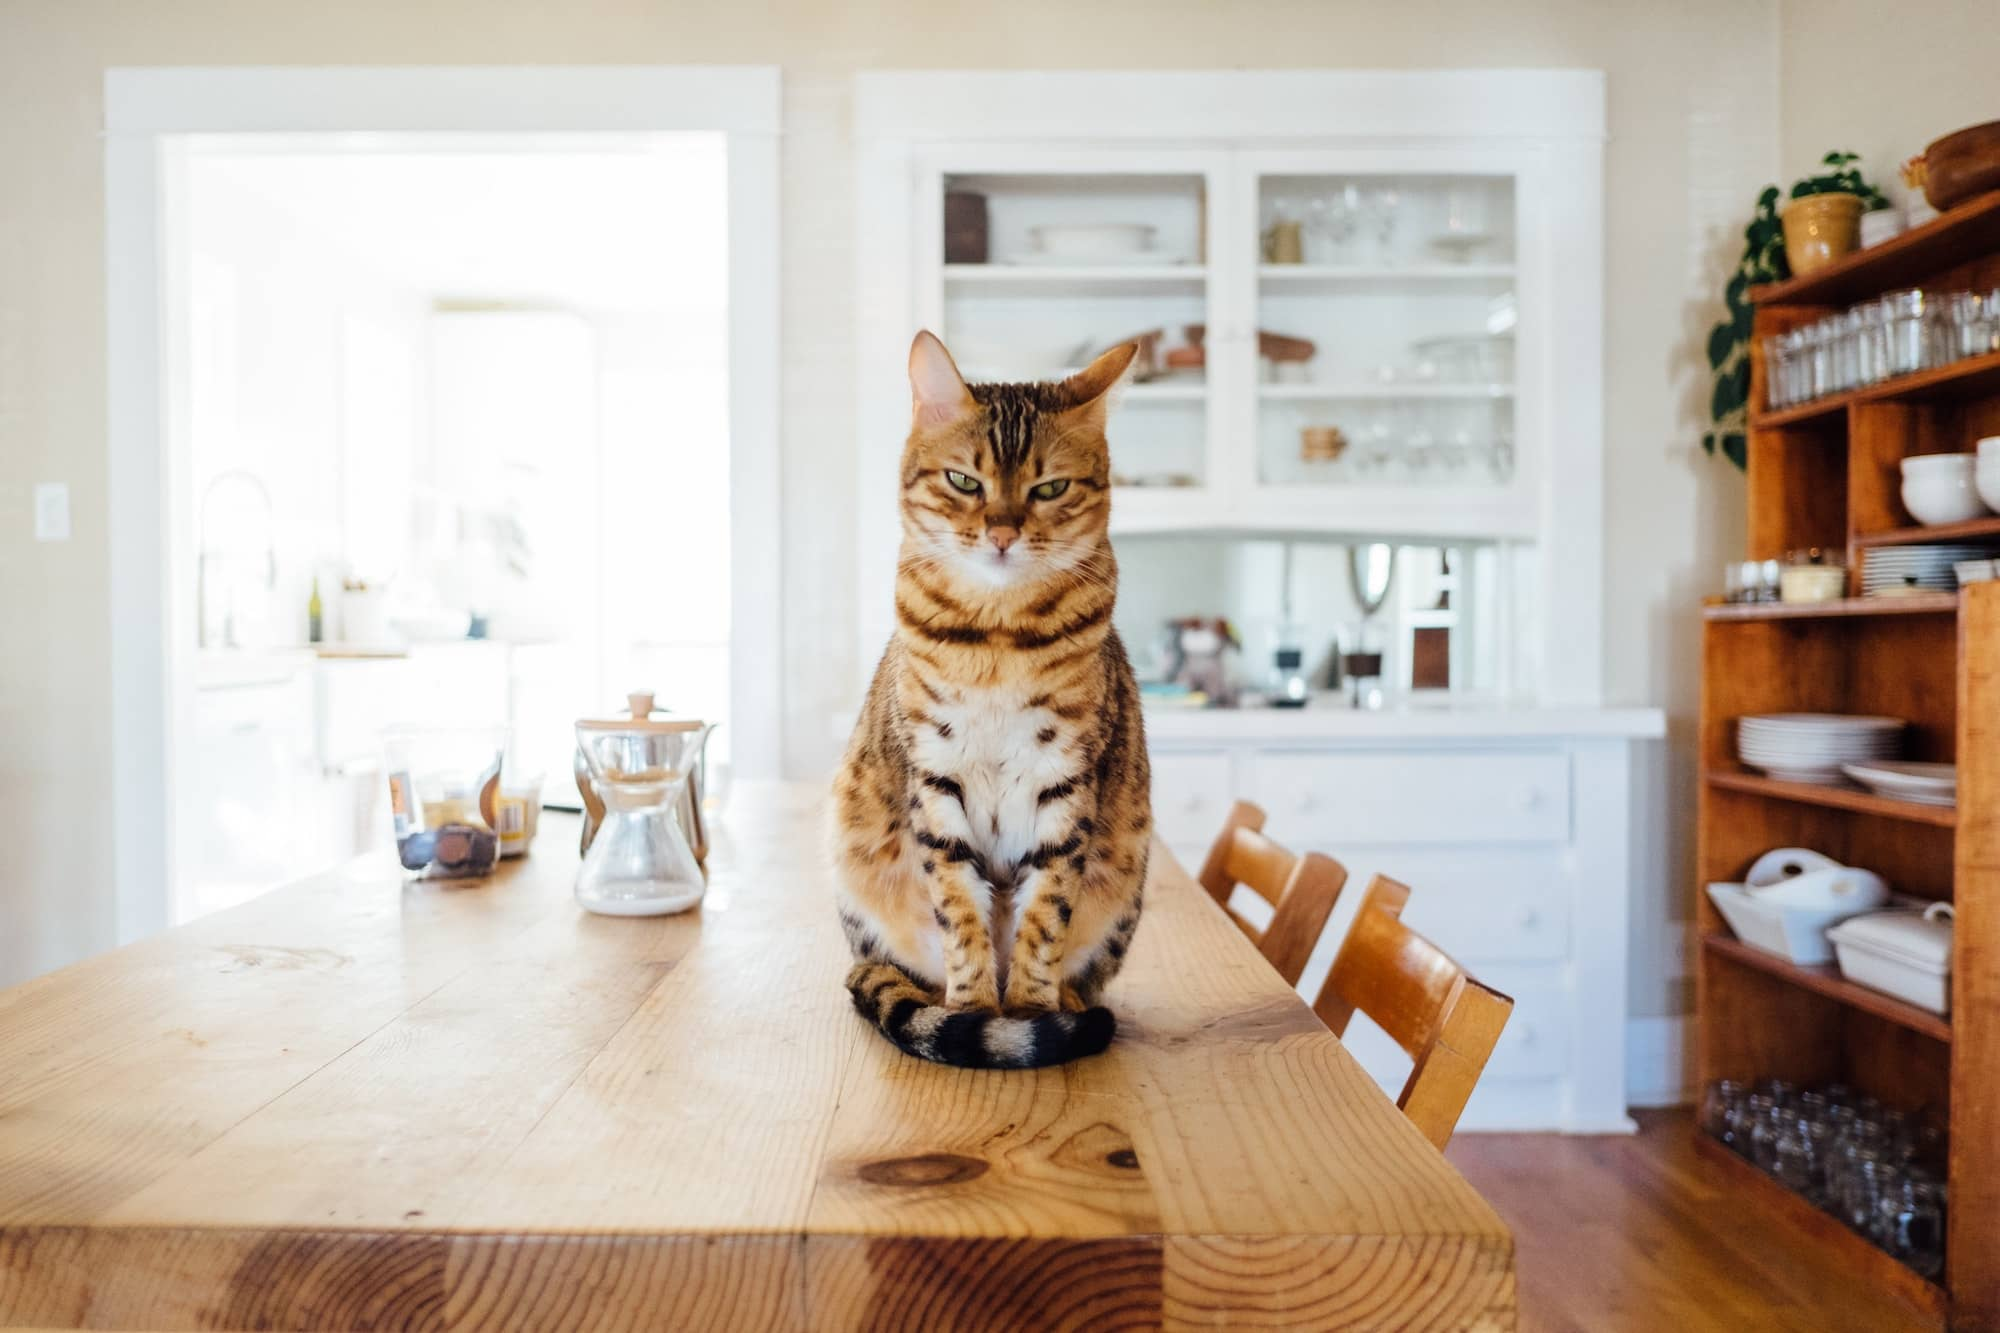 Cat sitting on the kitchen table